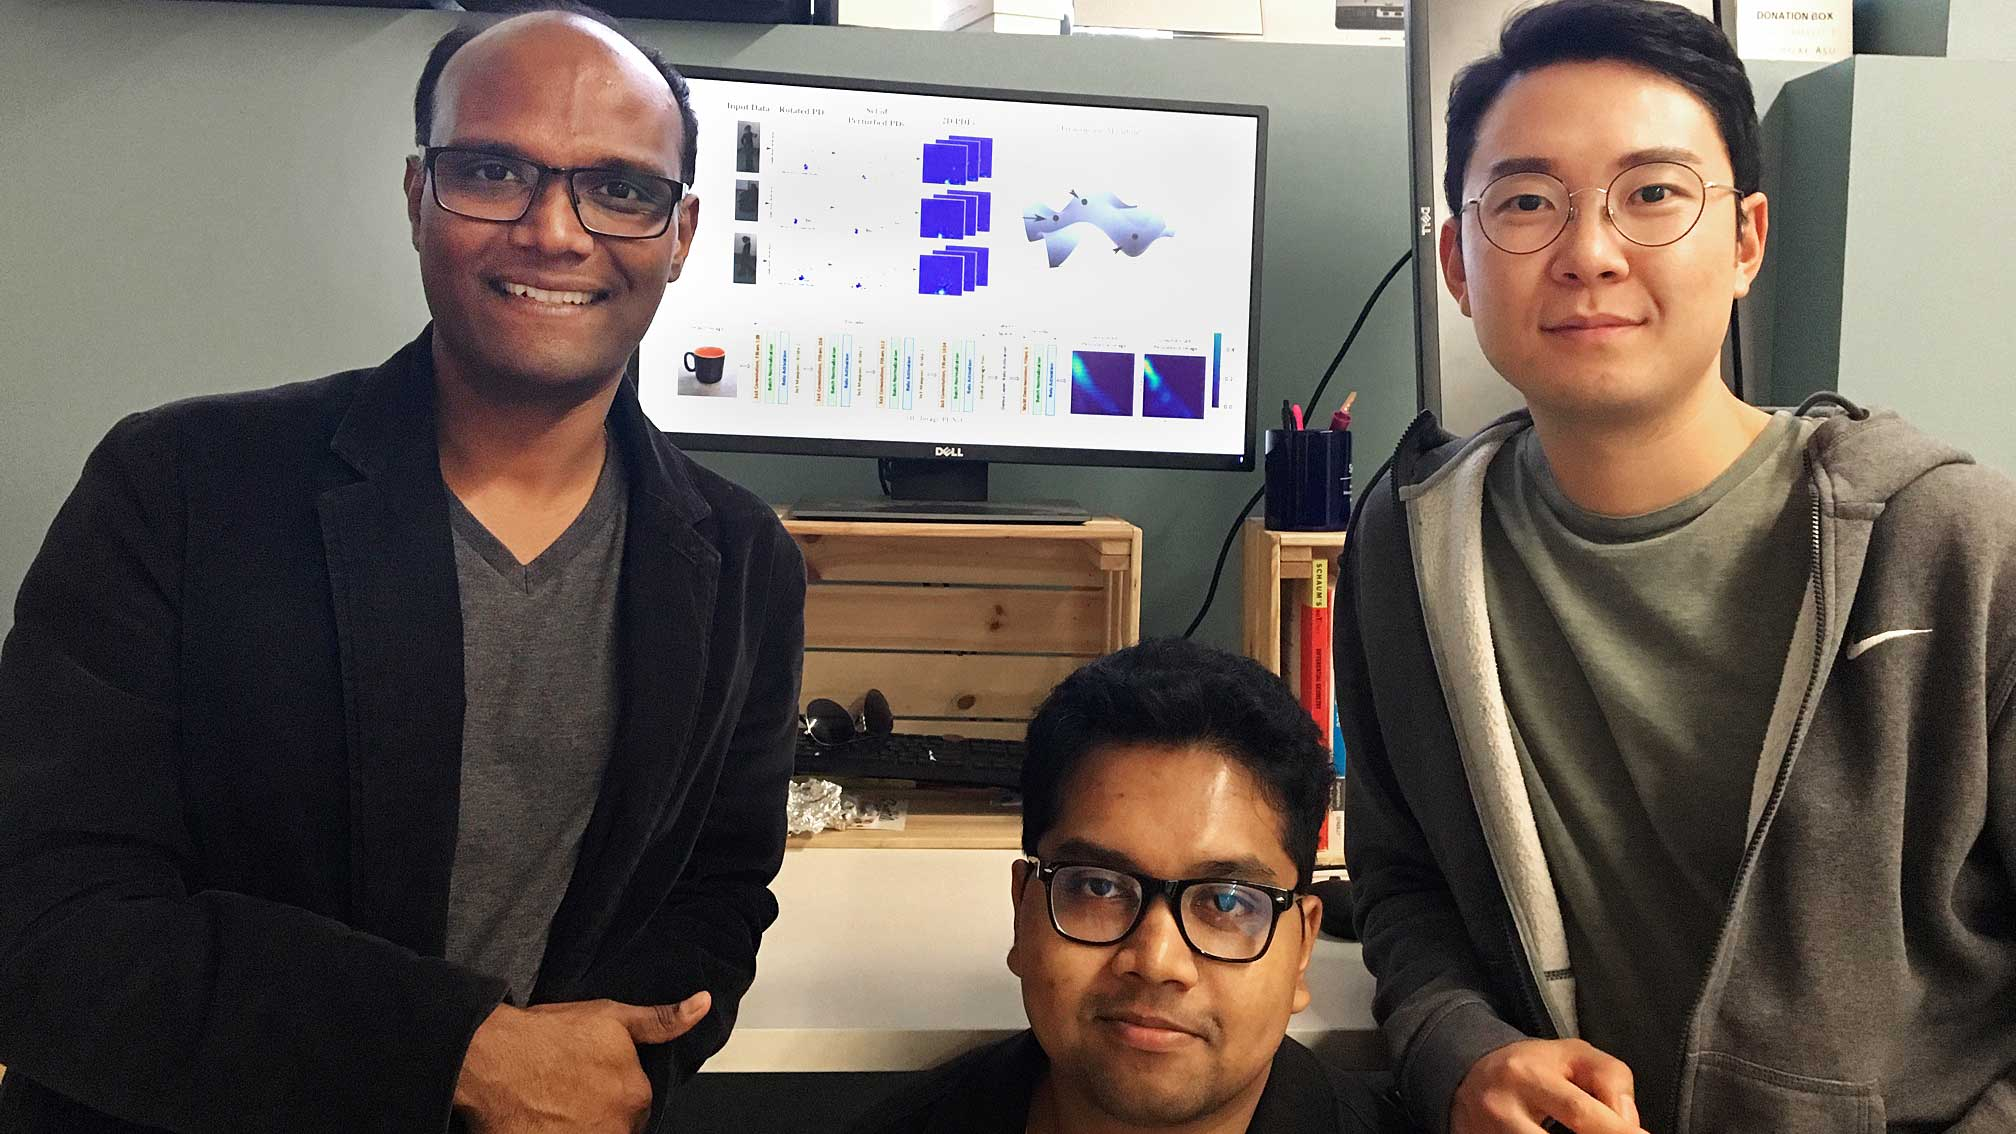 Pavan Turaga and his research team of two students pose in the lab in front of a computer screen of data